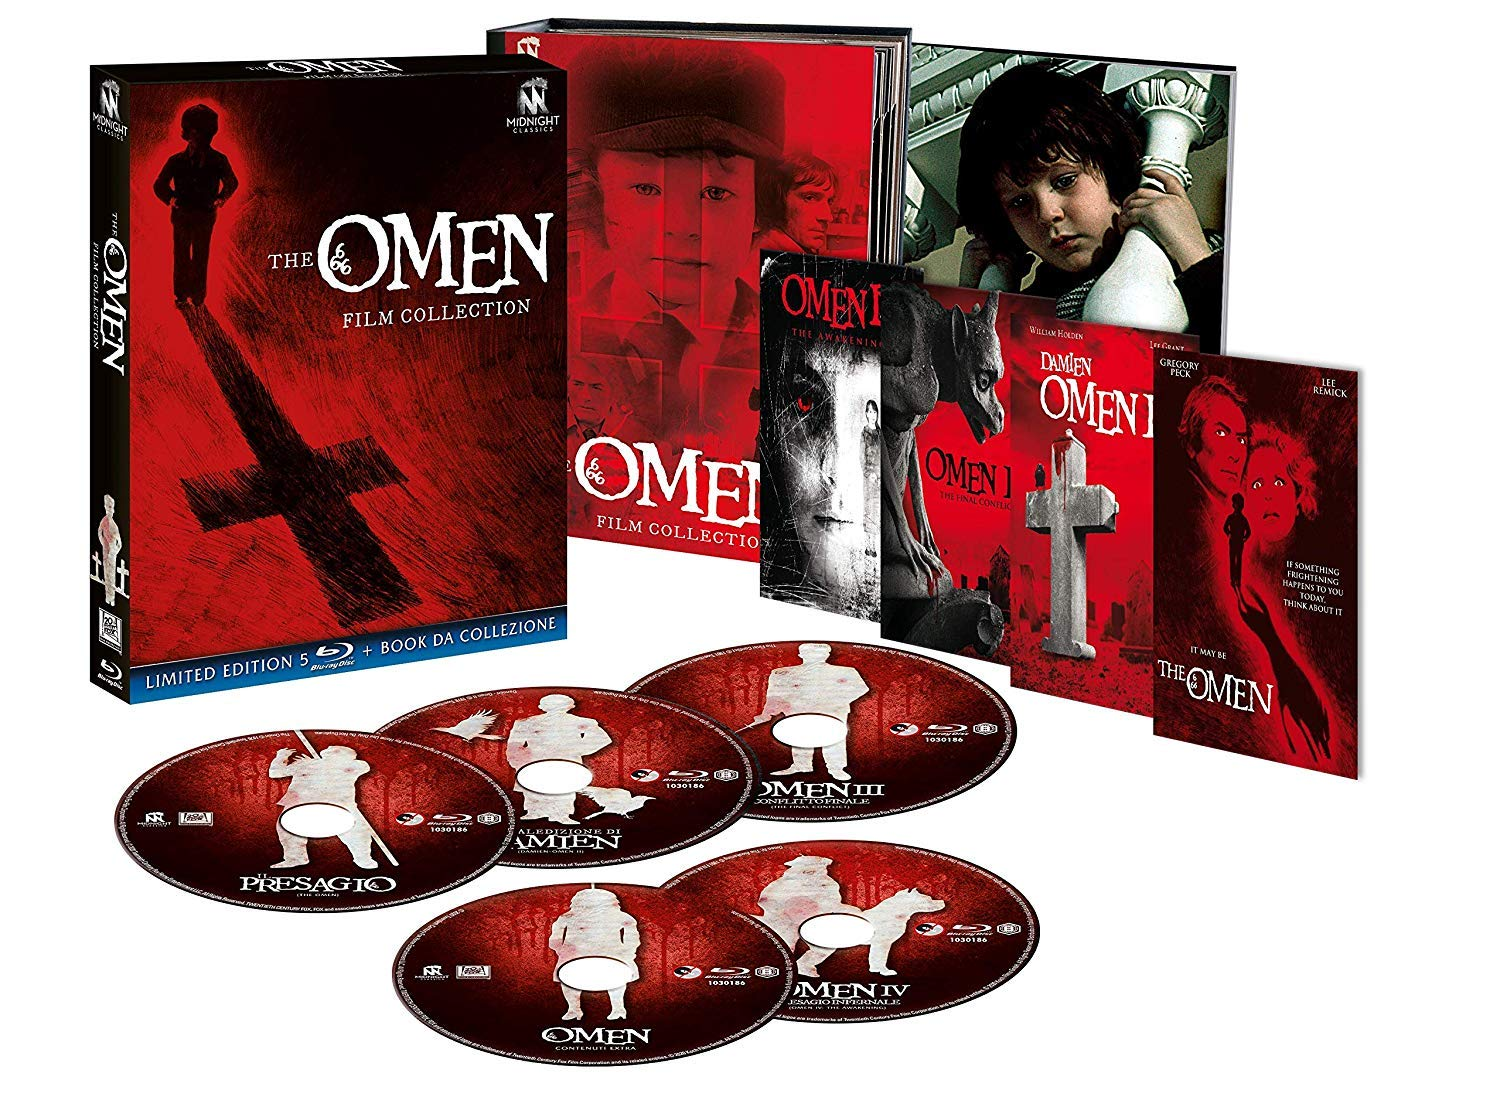 The Omen Film Collection